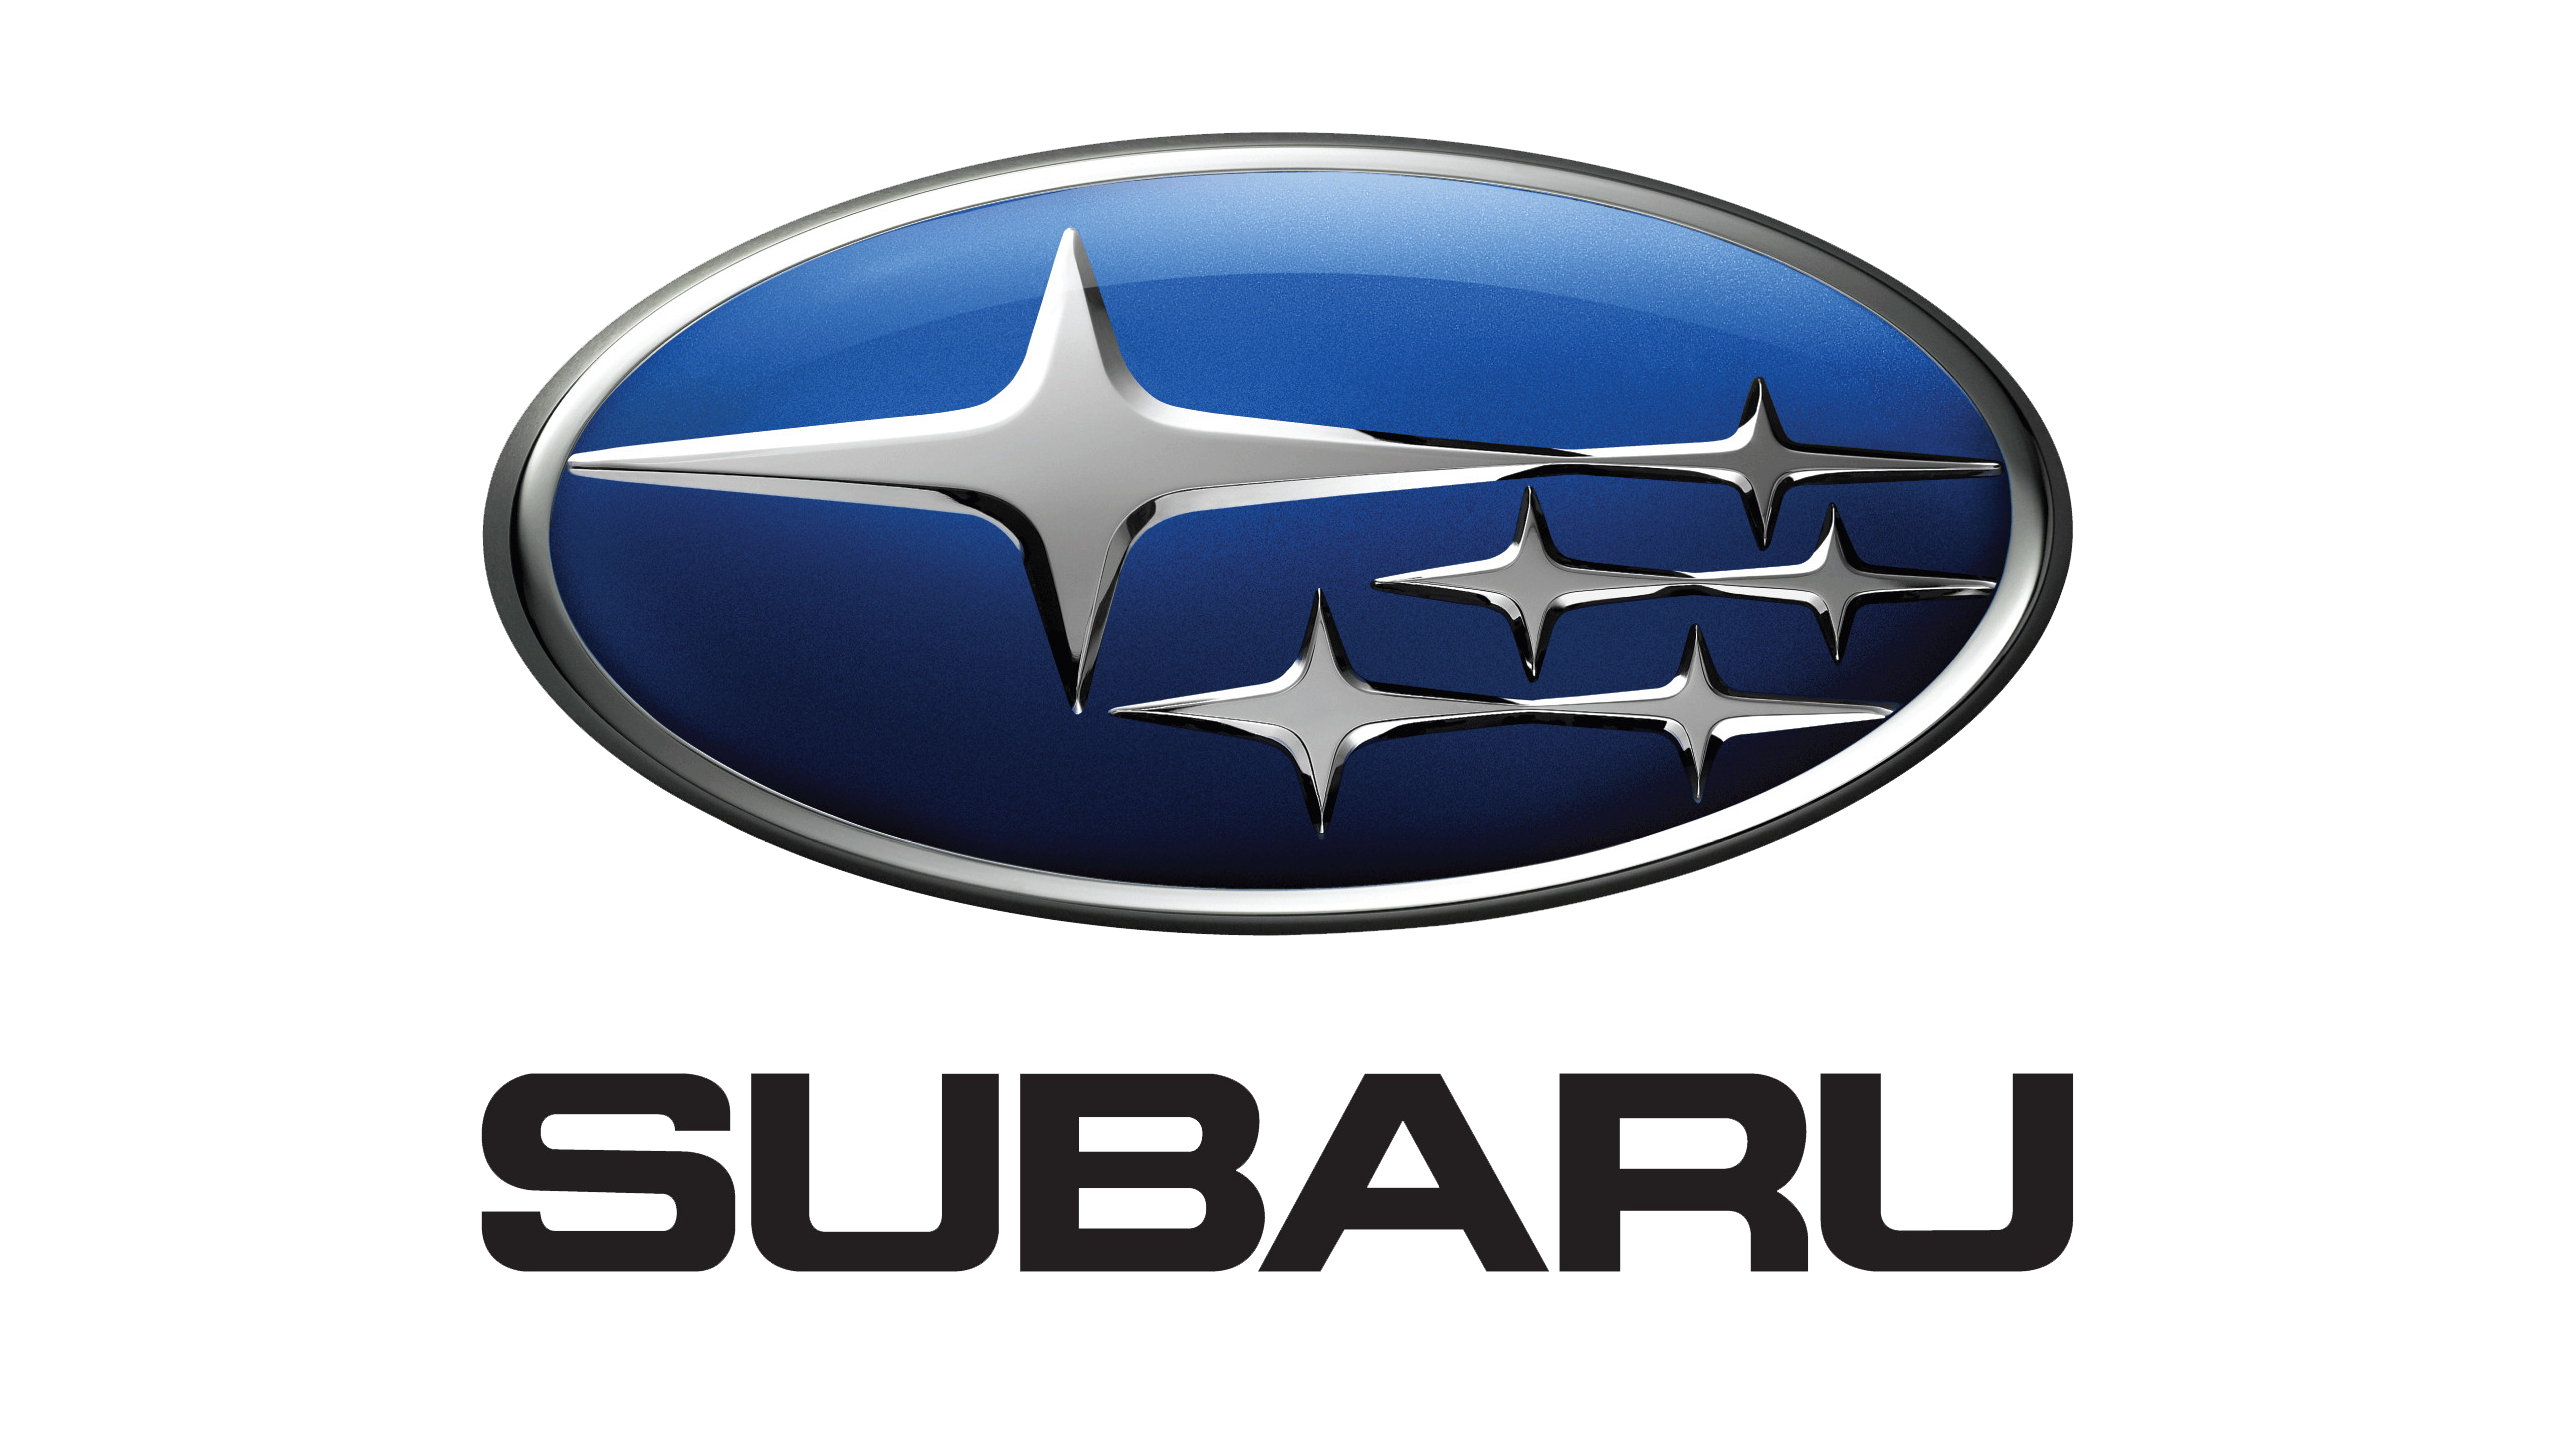 Subaru Wallpapers 1080p